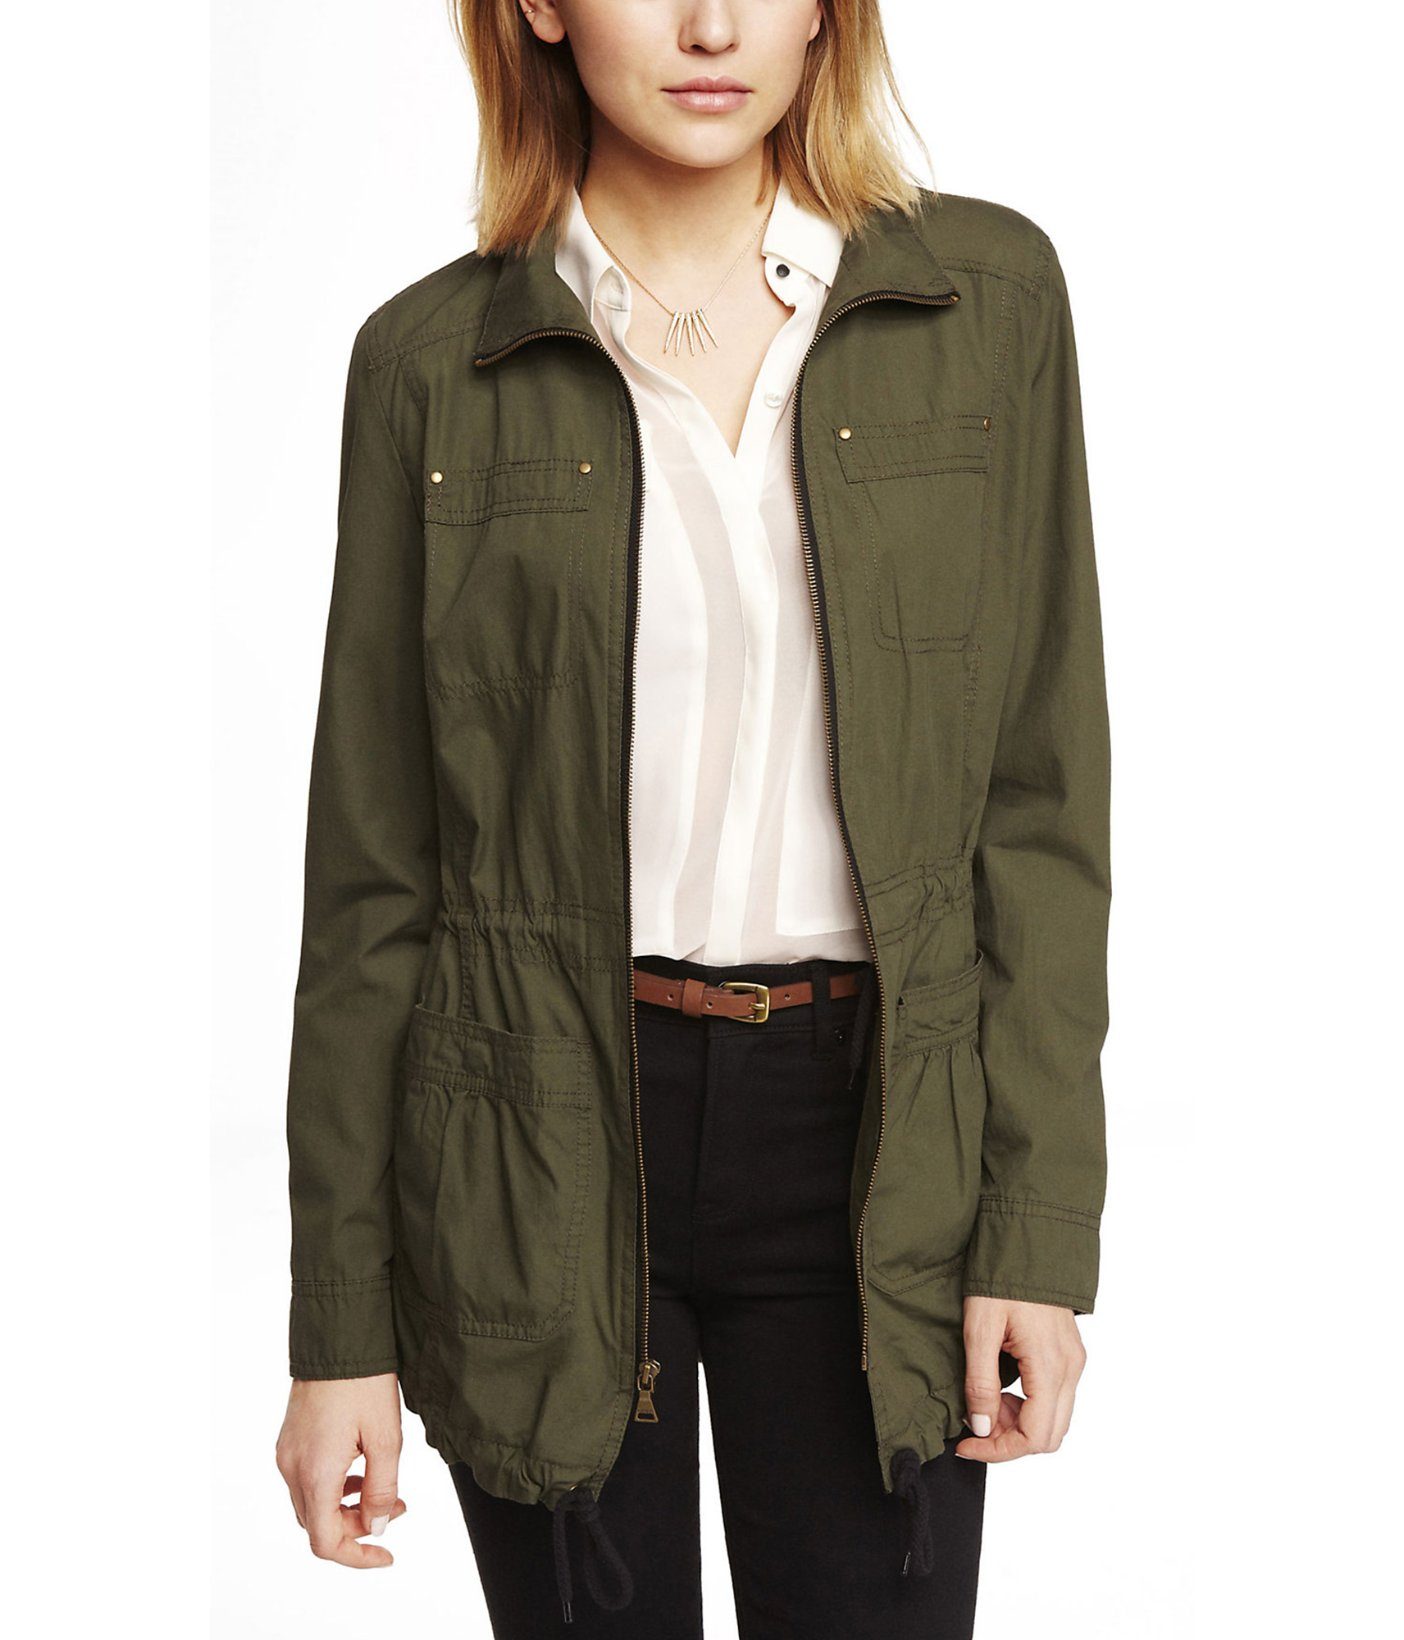 Express Green Jacket